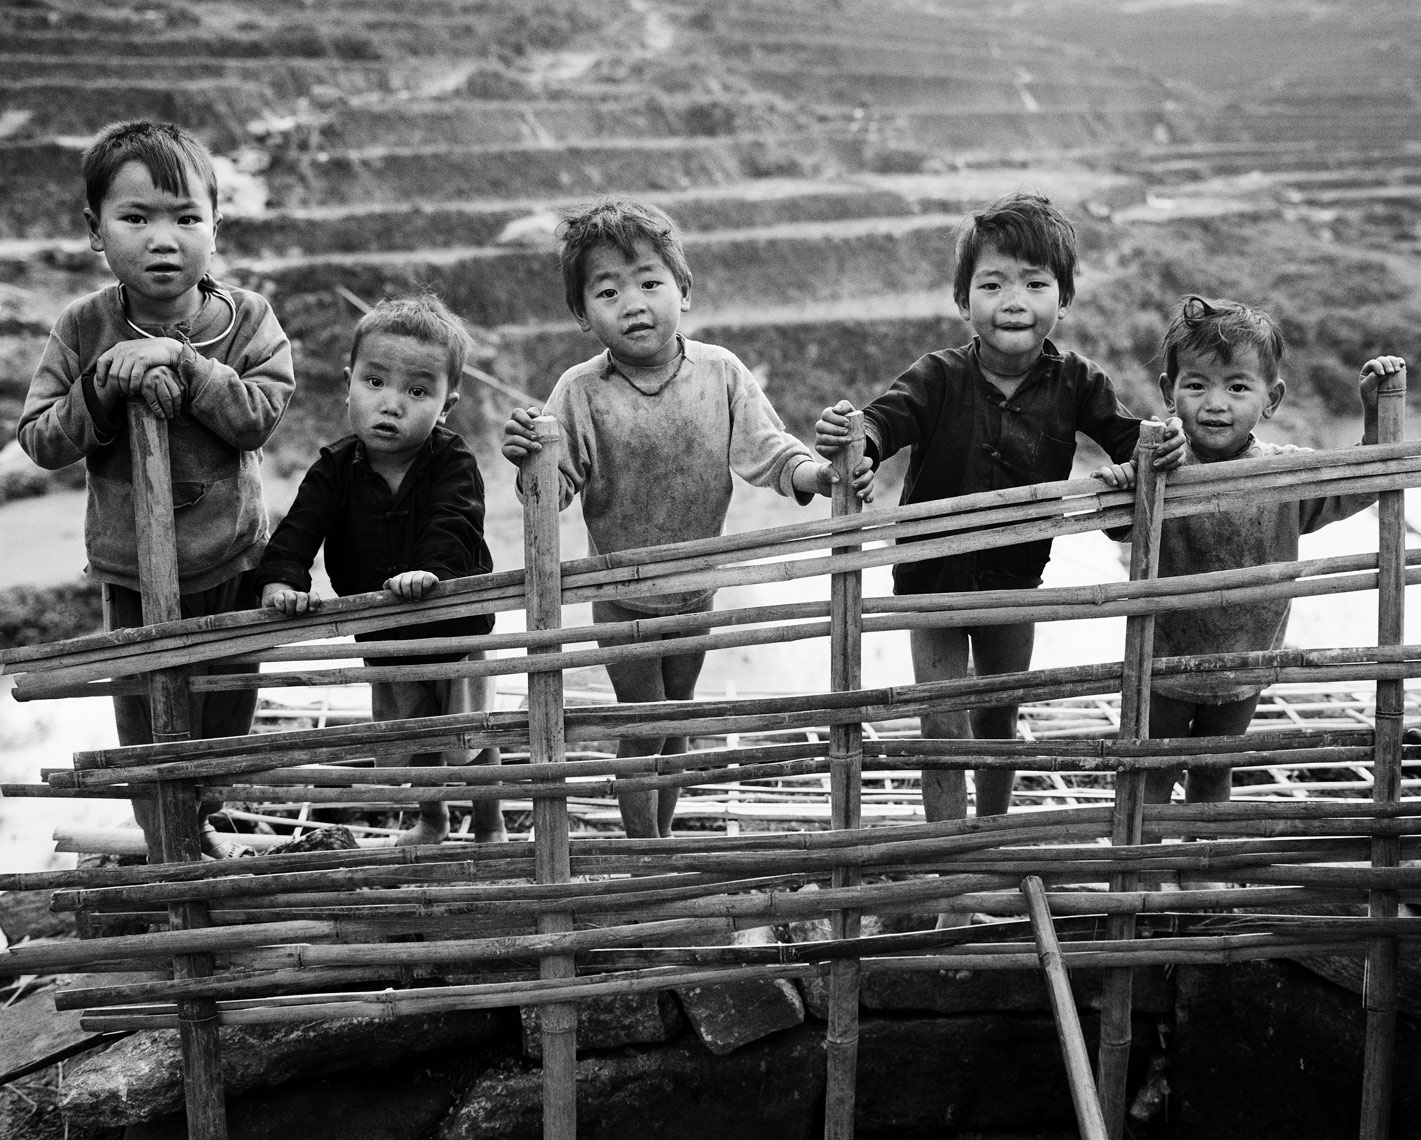 sapa-kids-on-fence-print.jpg